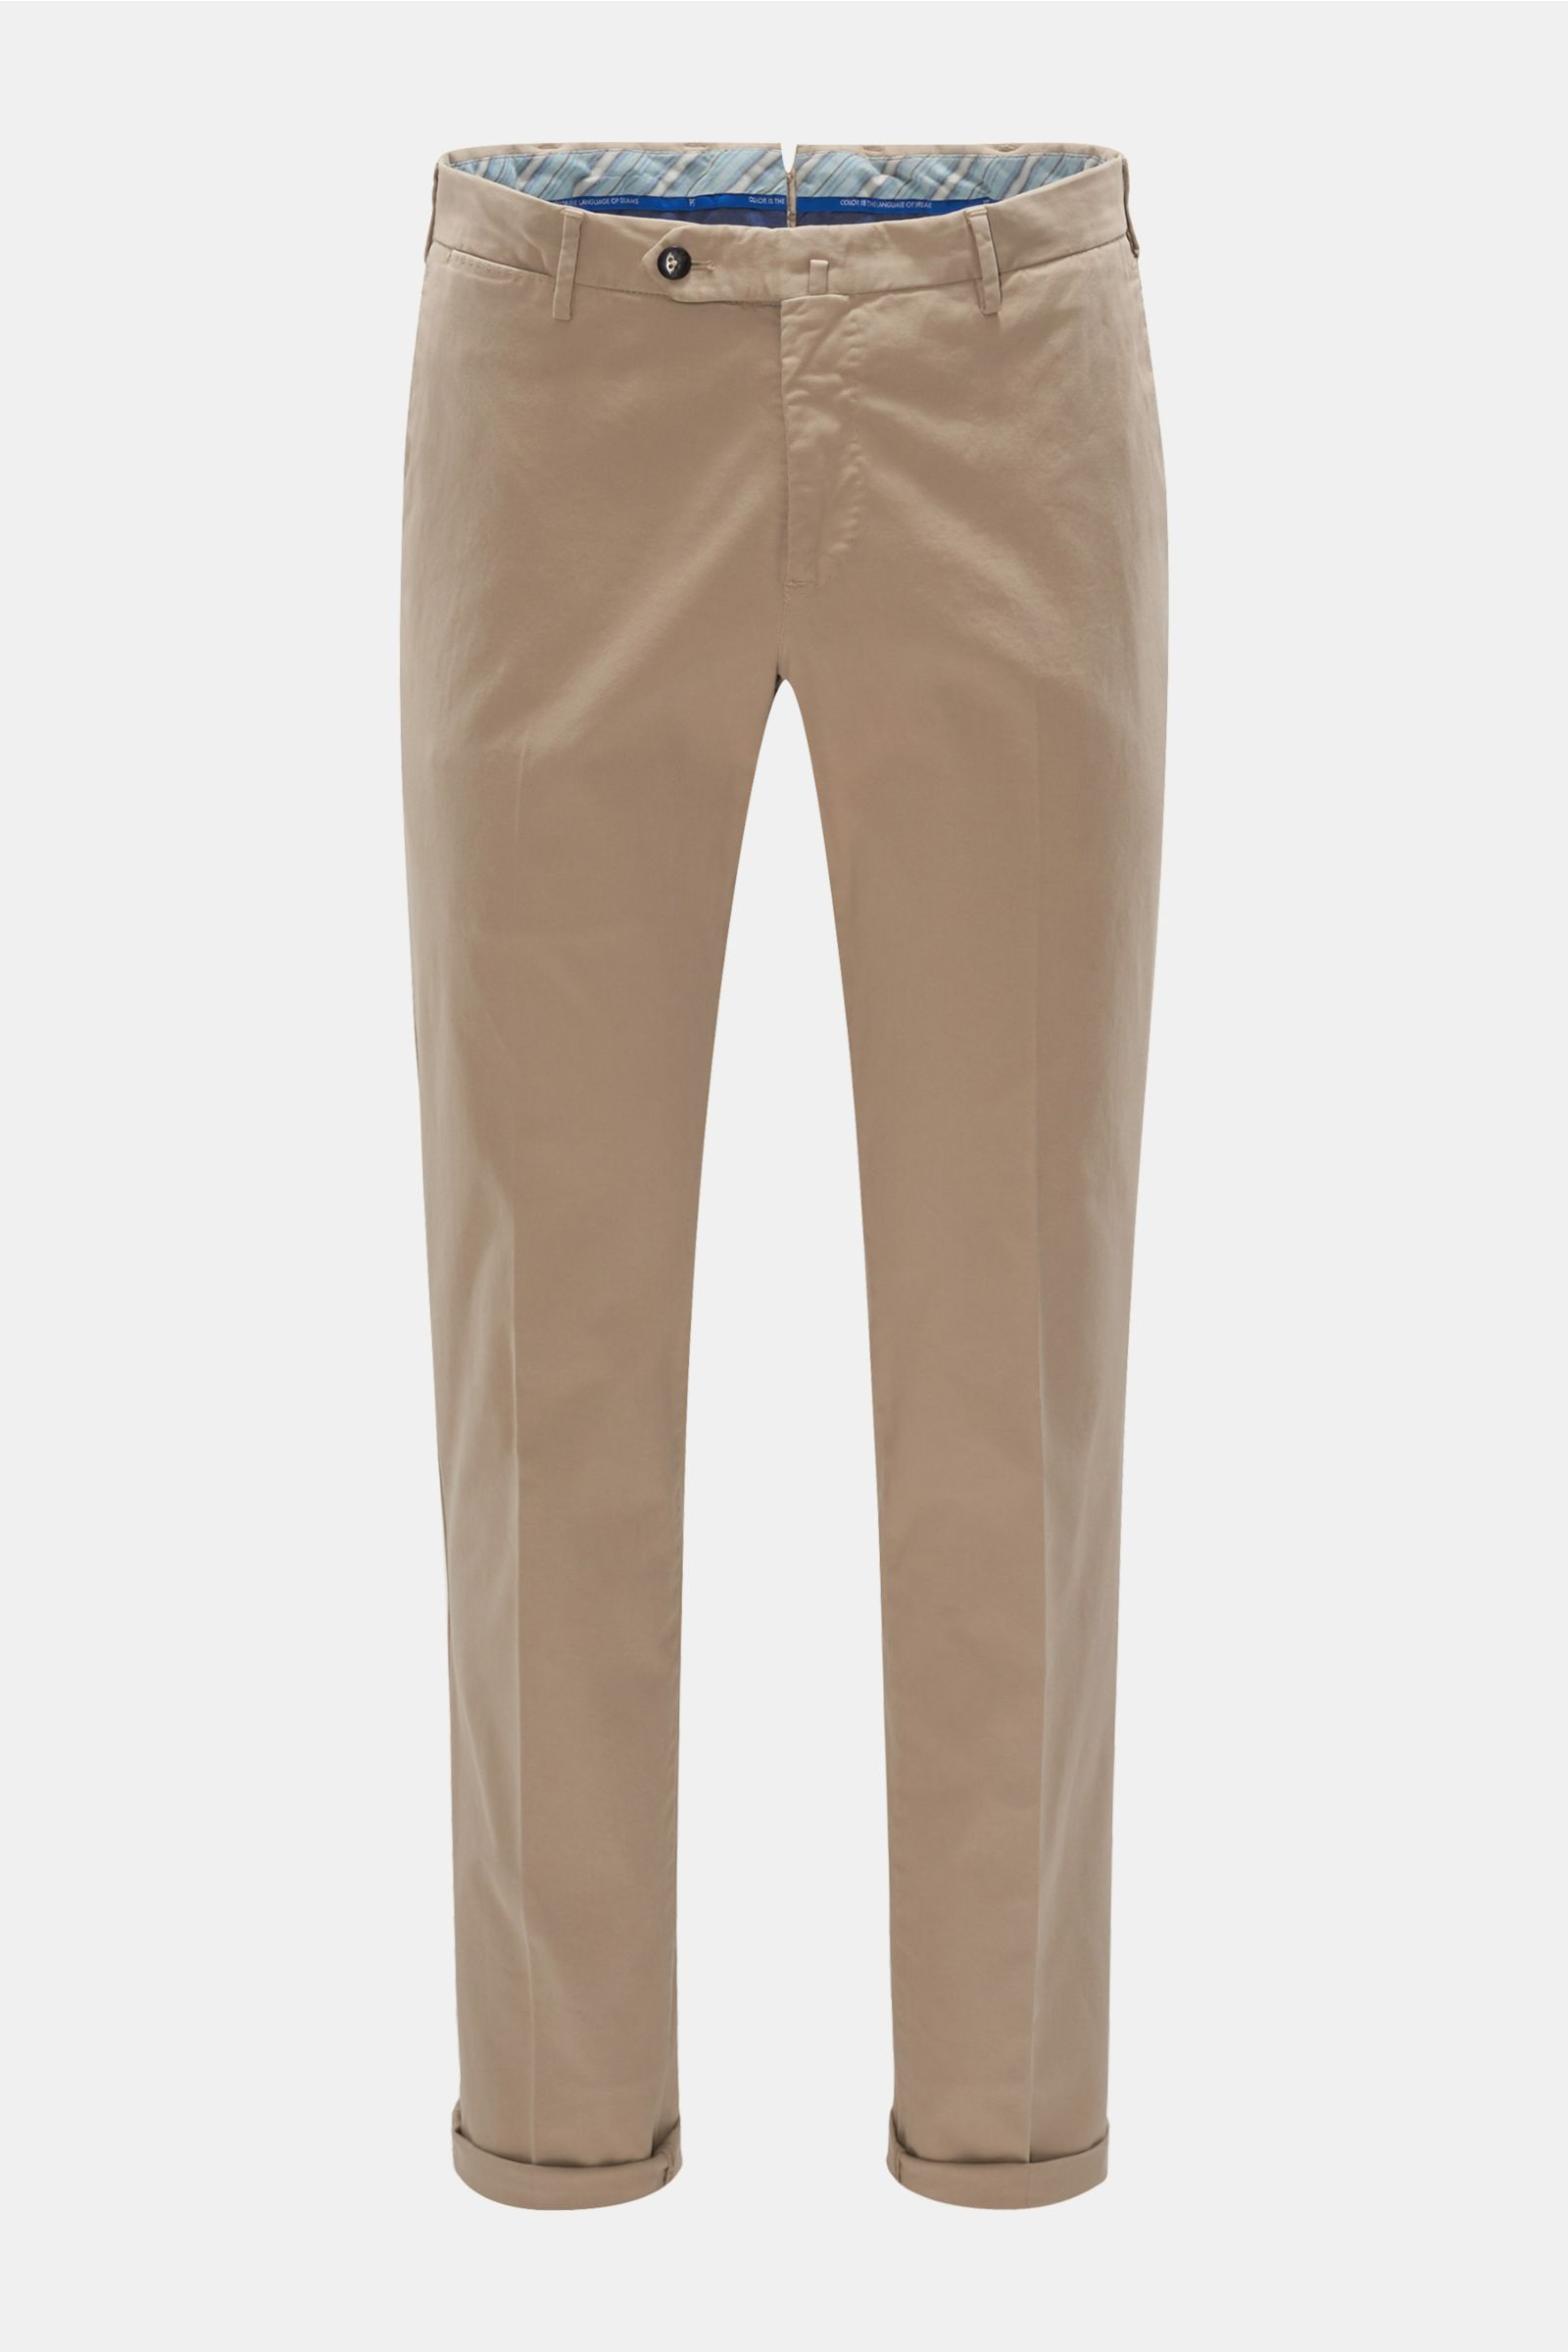 Chino 'Slim Fit' beige